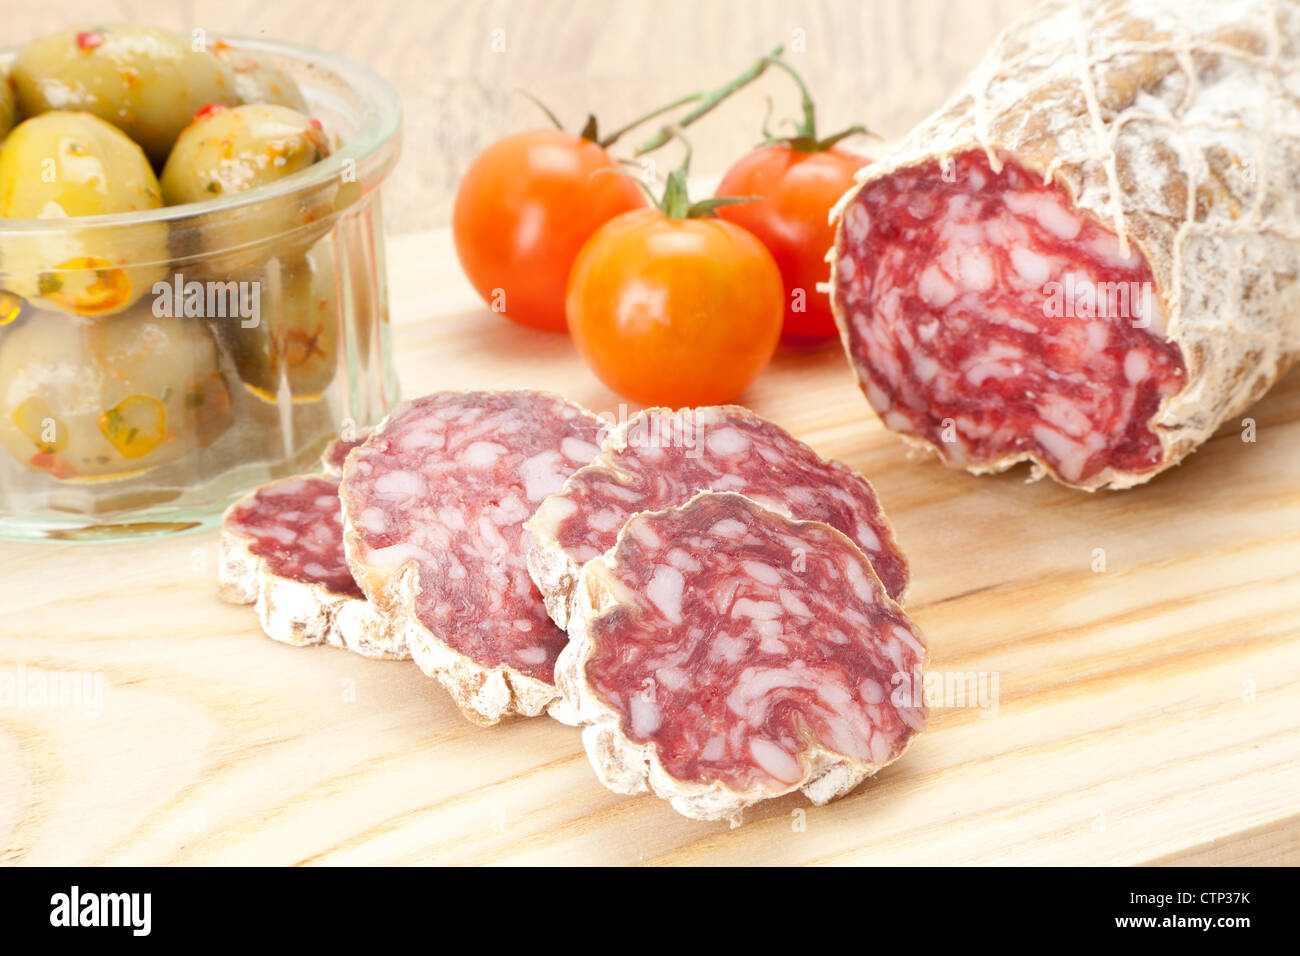 A dry cured salami sausage on a wooden cutting board with vine tomato's and olives in the background, shallow depth Stock Photo